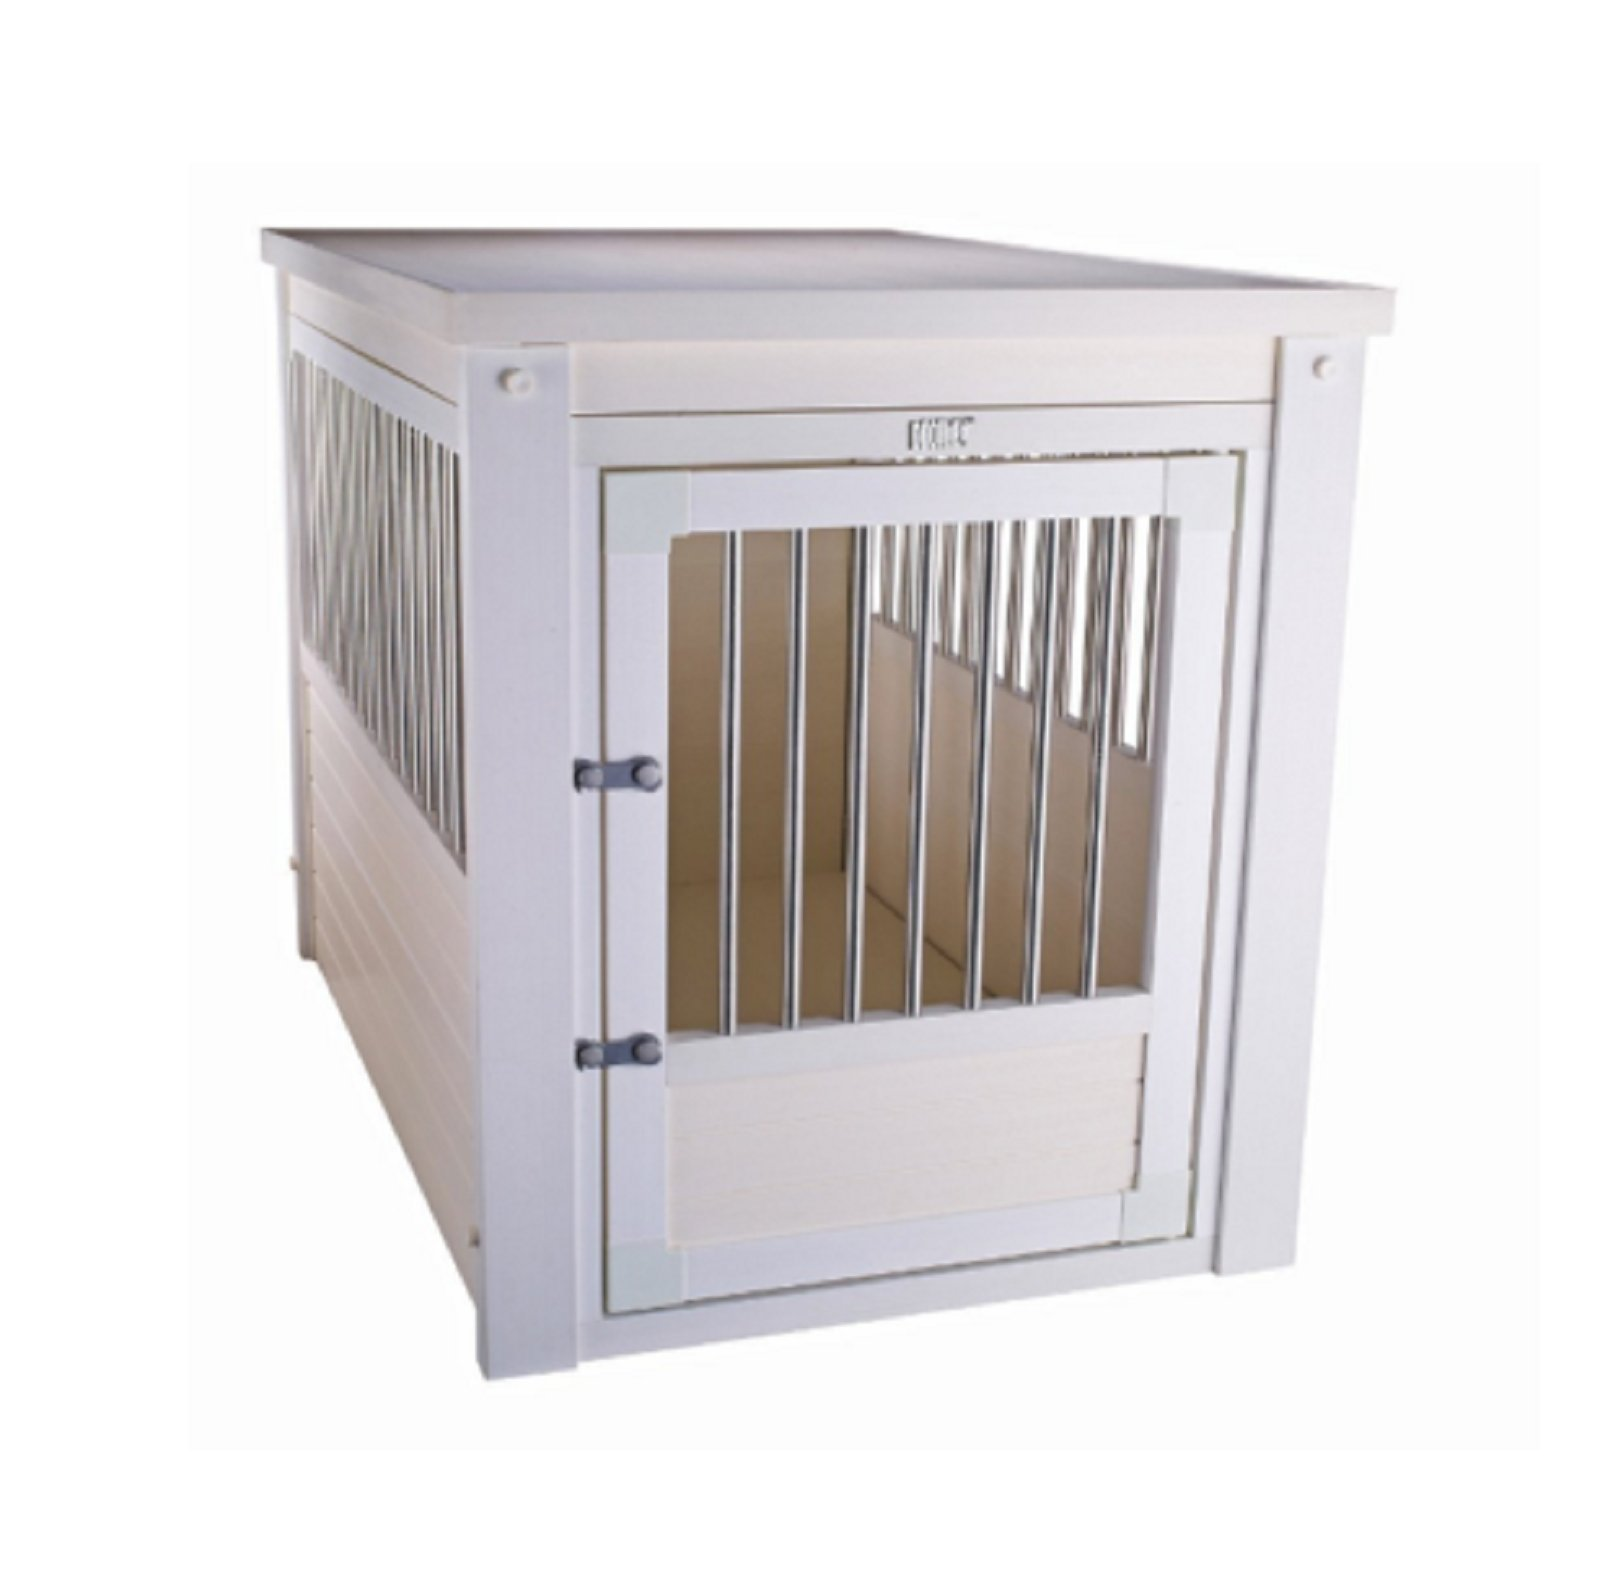 Hot Sale! Small Breed Dog Kennel White End Table Cage Crate Pet Wooden Medium Puppy Bed